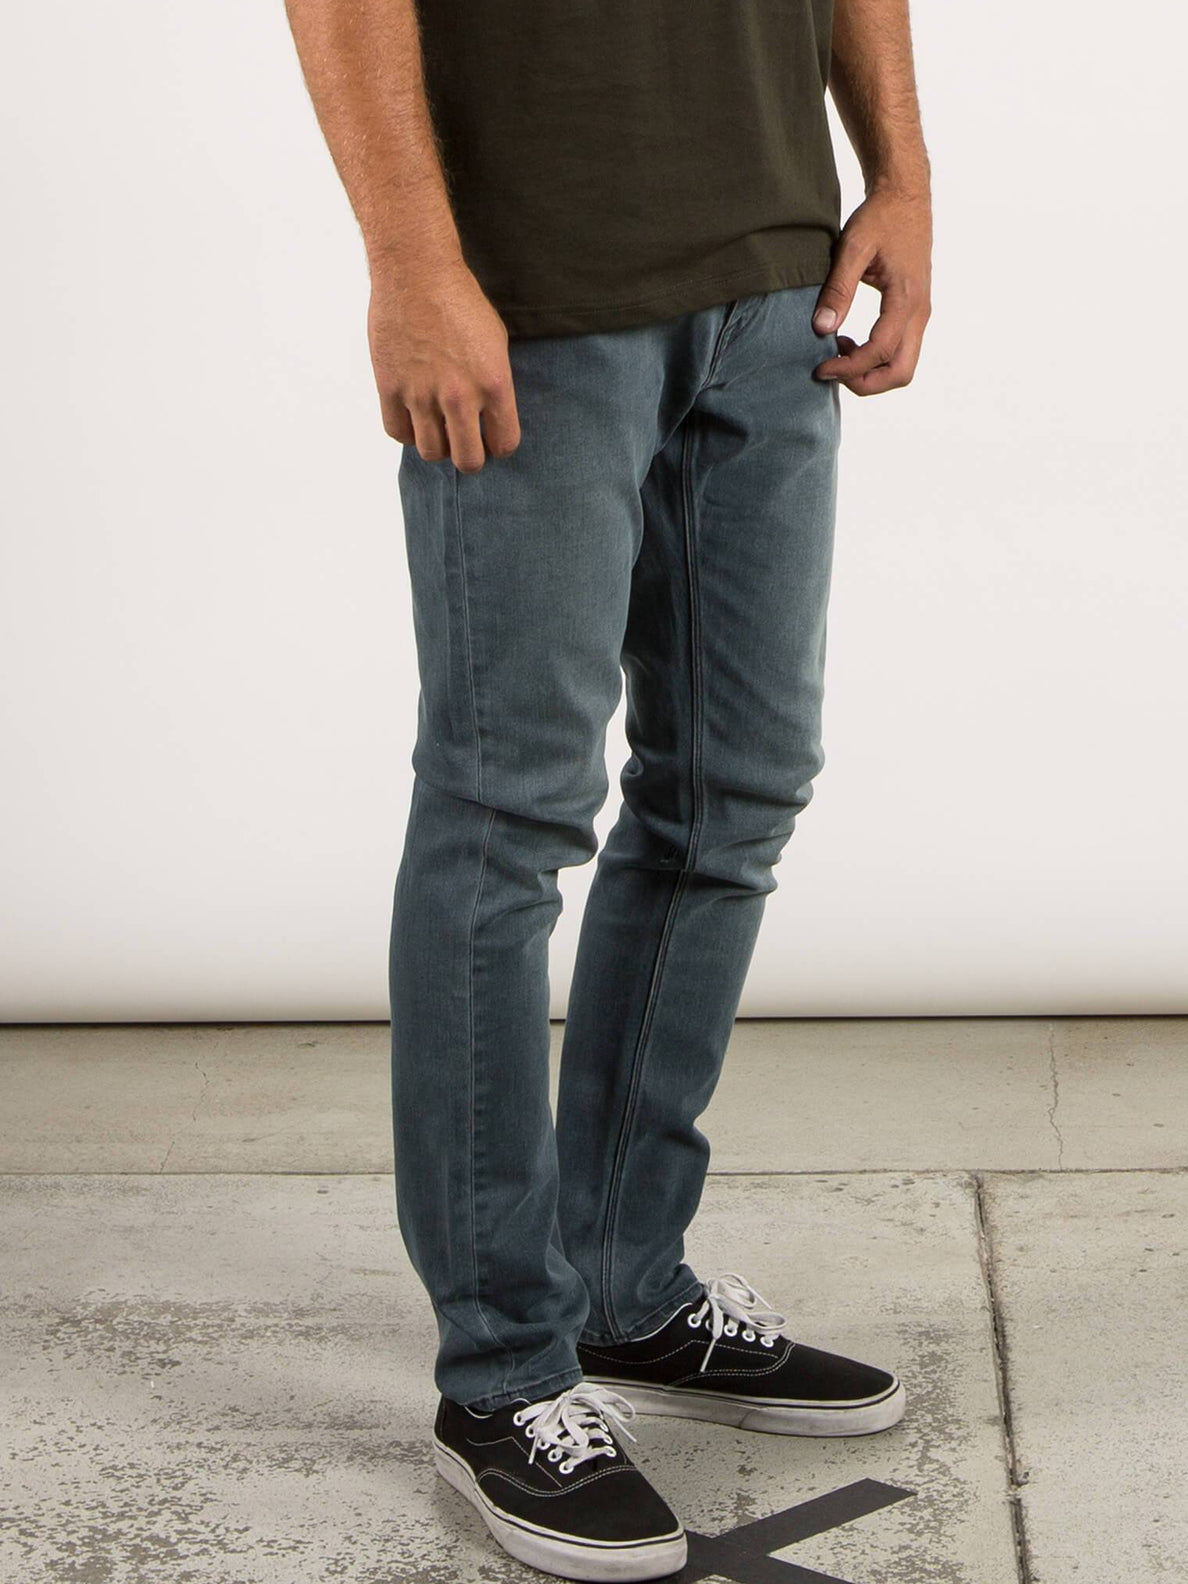 Solver Tapered Jeans - Enlightened Stoned